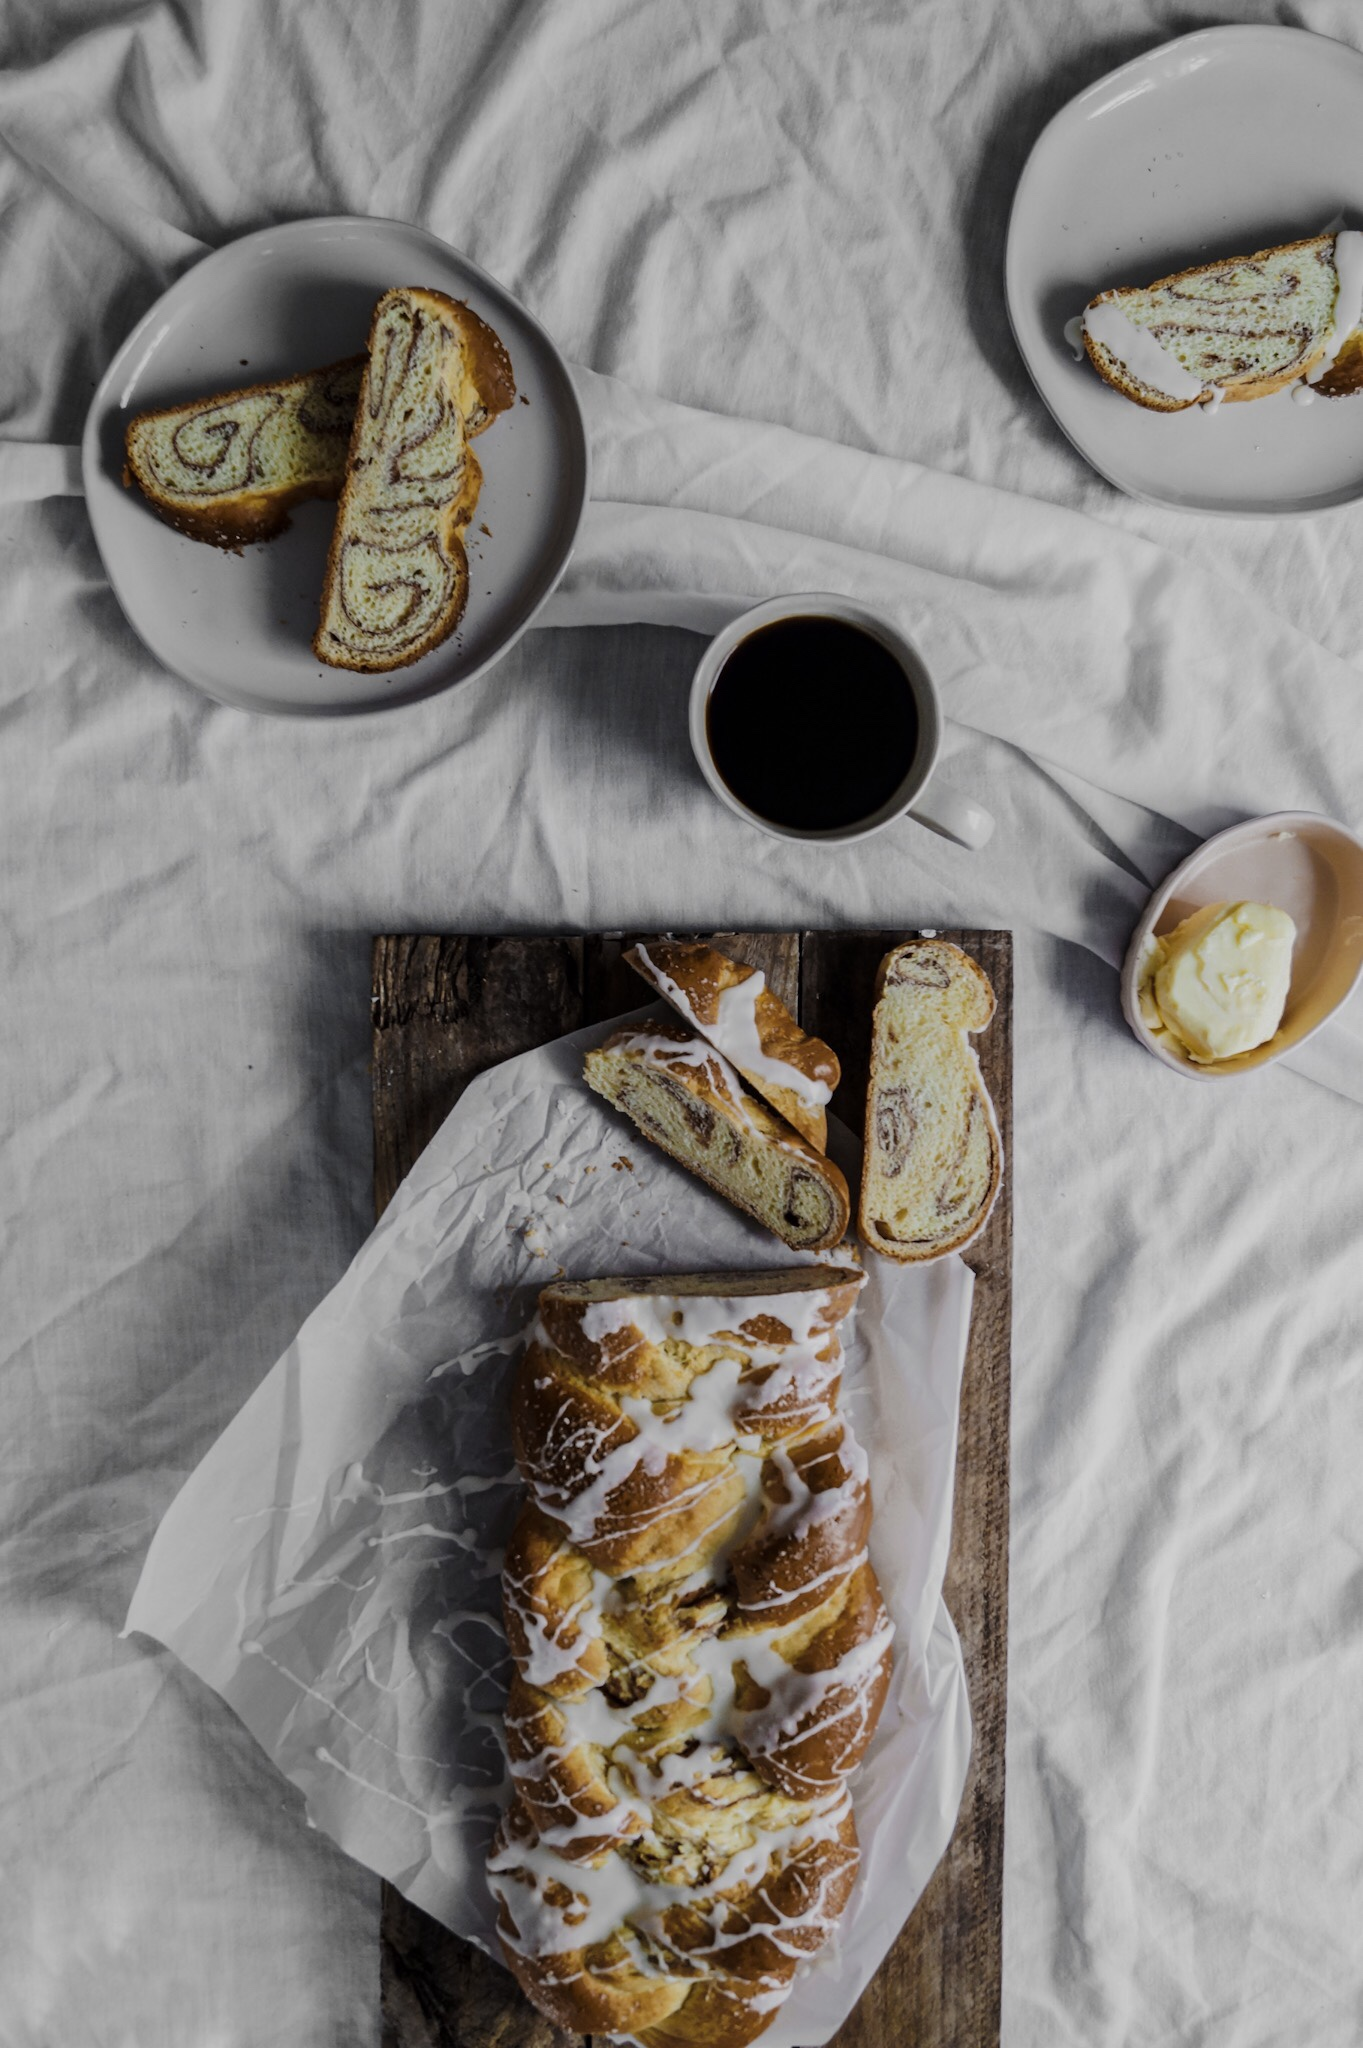 Homemade cinnamon bread and a few practical ways to leave the chaos behind and get cozy for a hygge winter. Cinnamon bread by A Messy Bun Kitchen  cinnamon braided bread, winter cooking, winter recipes